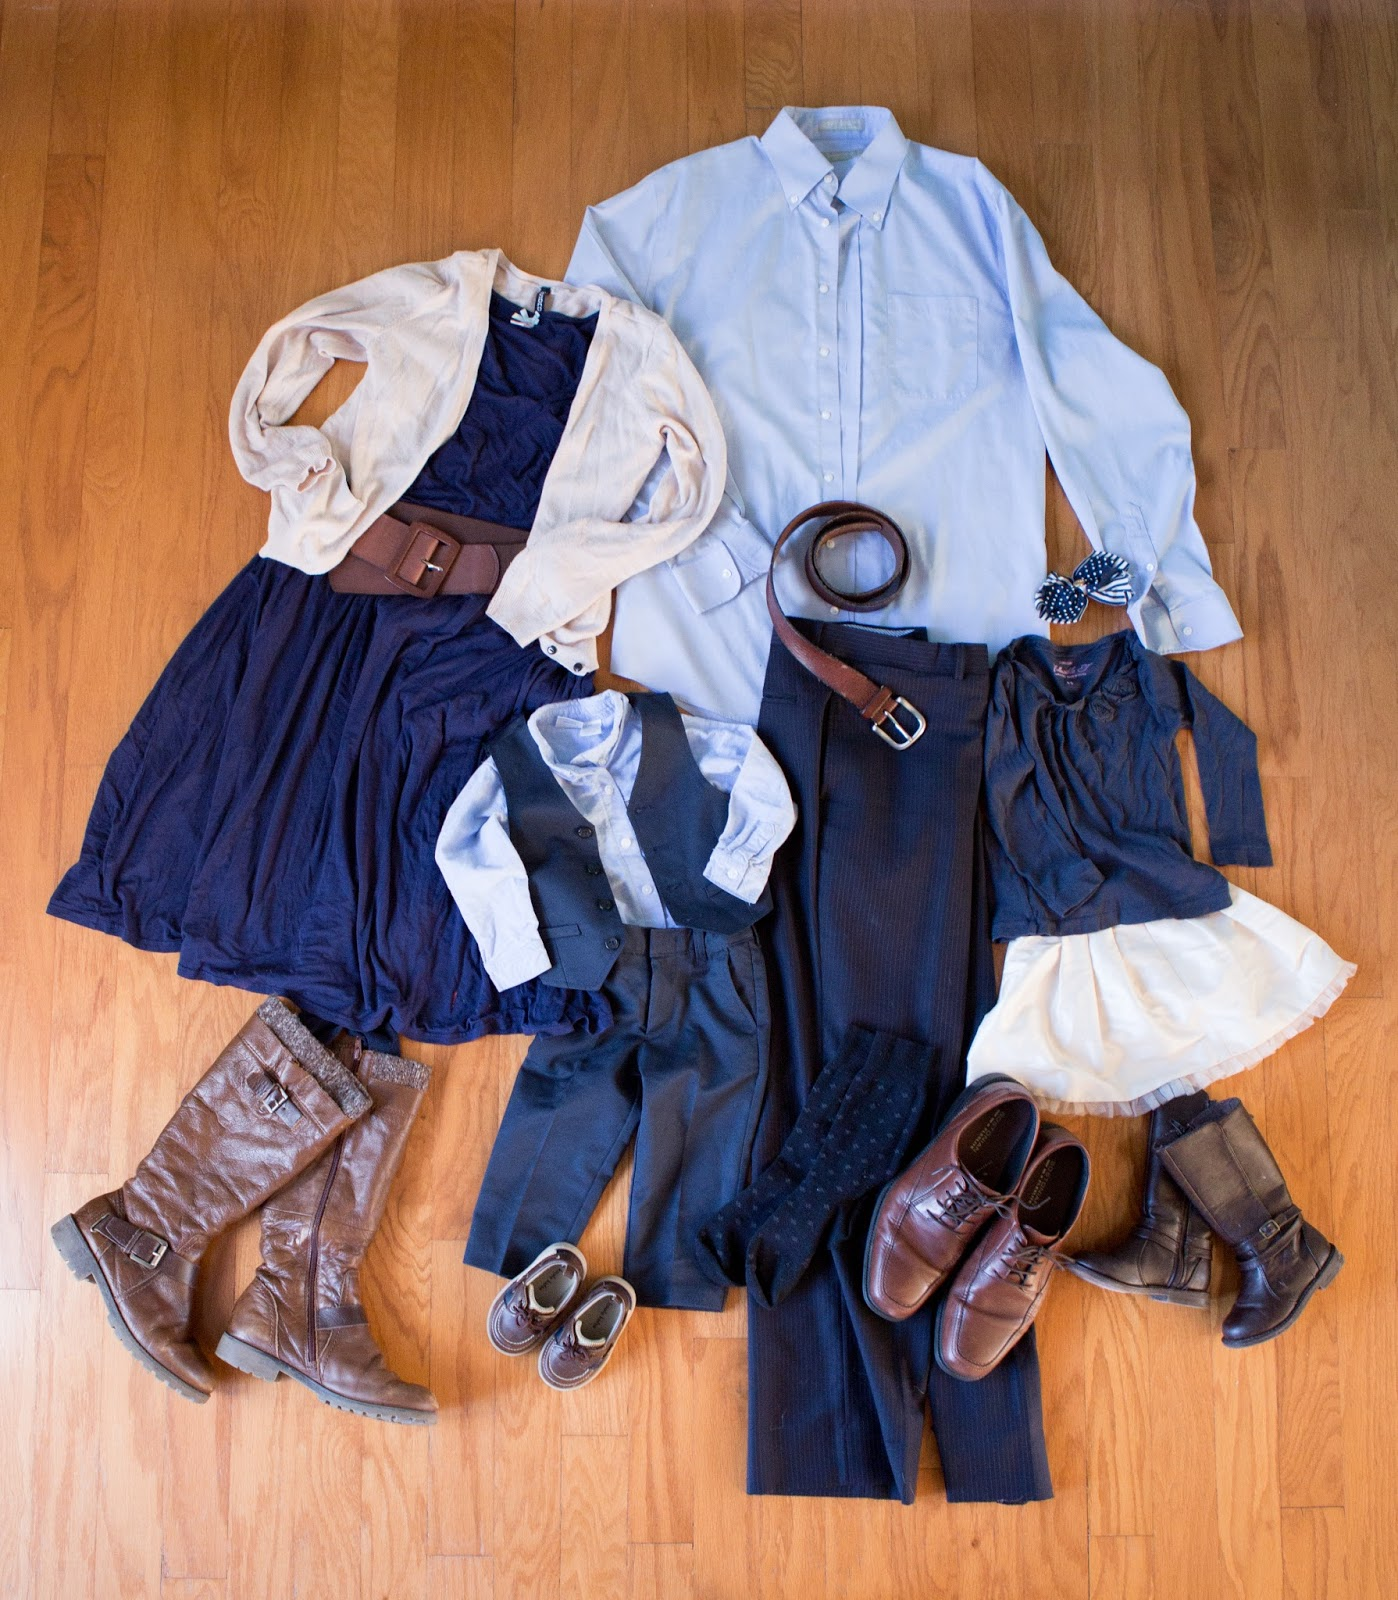 what to wear for family pictures, how to plan your outfits for family pictures, choosing your outfits for family pictures, family portrait photography, formal family outfit ideas for pictures